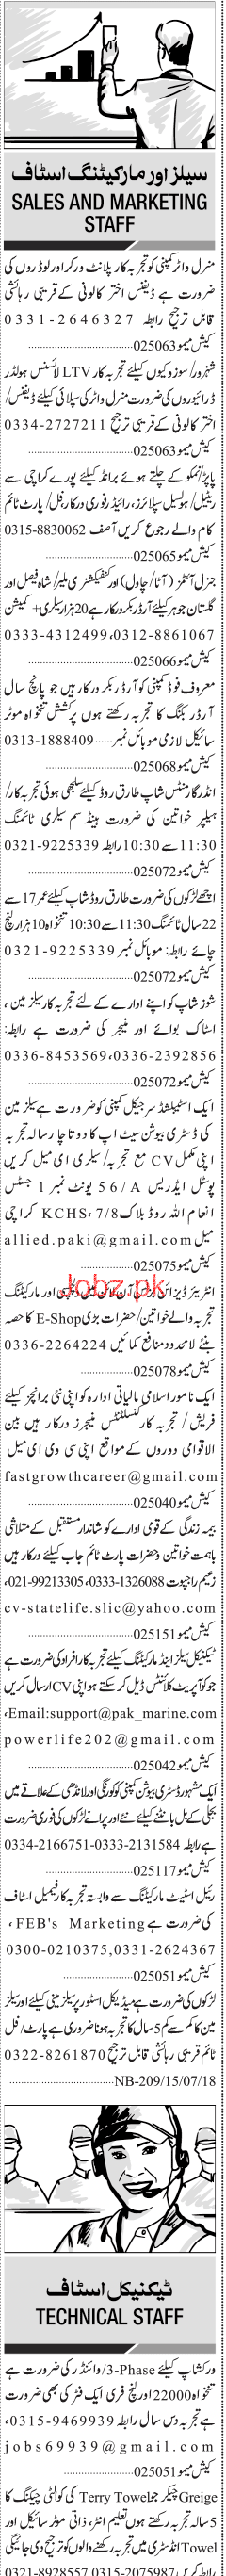 LTV Drivers, Order Bookers, Salesmen Job Opportunity